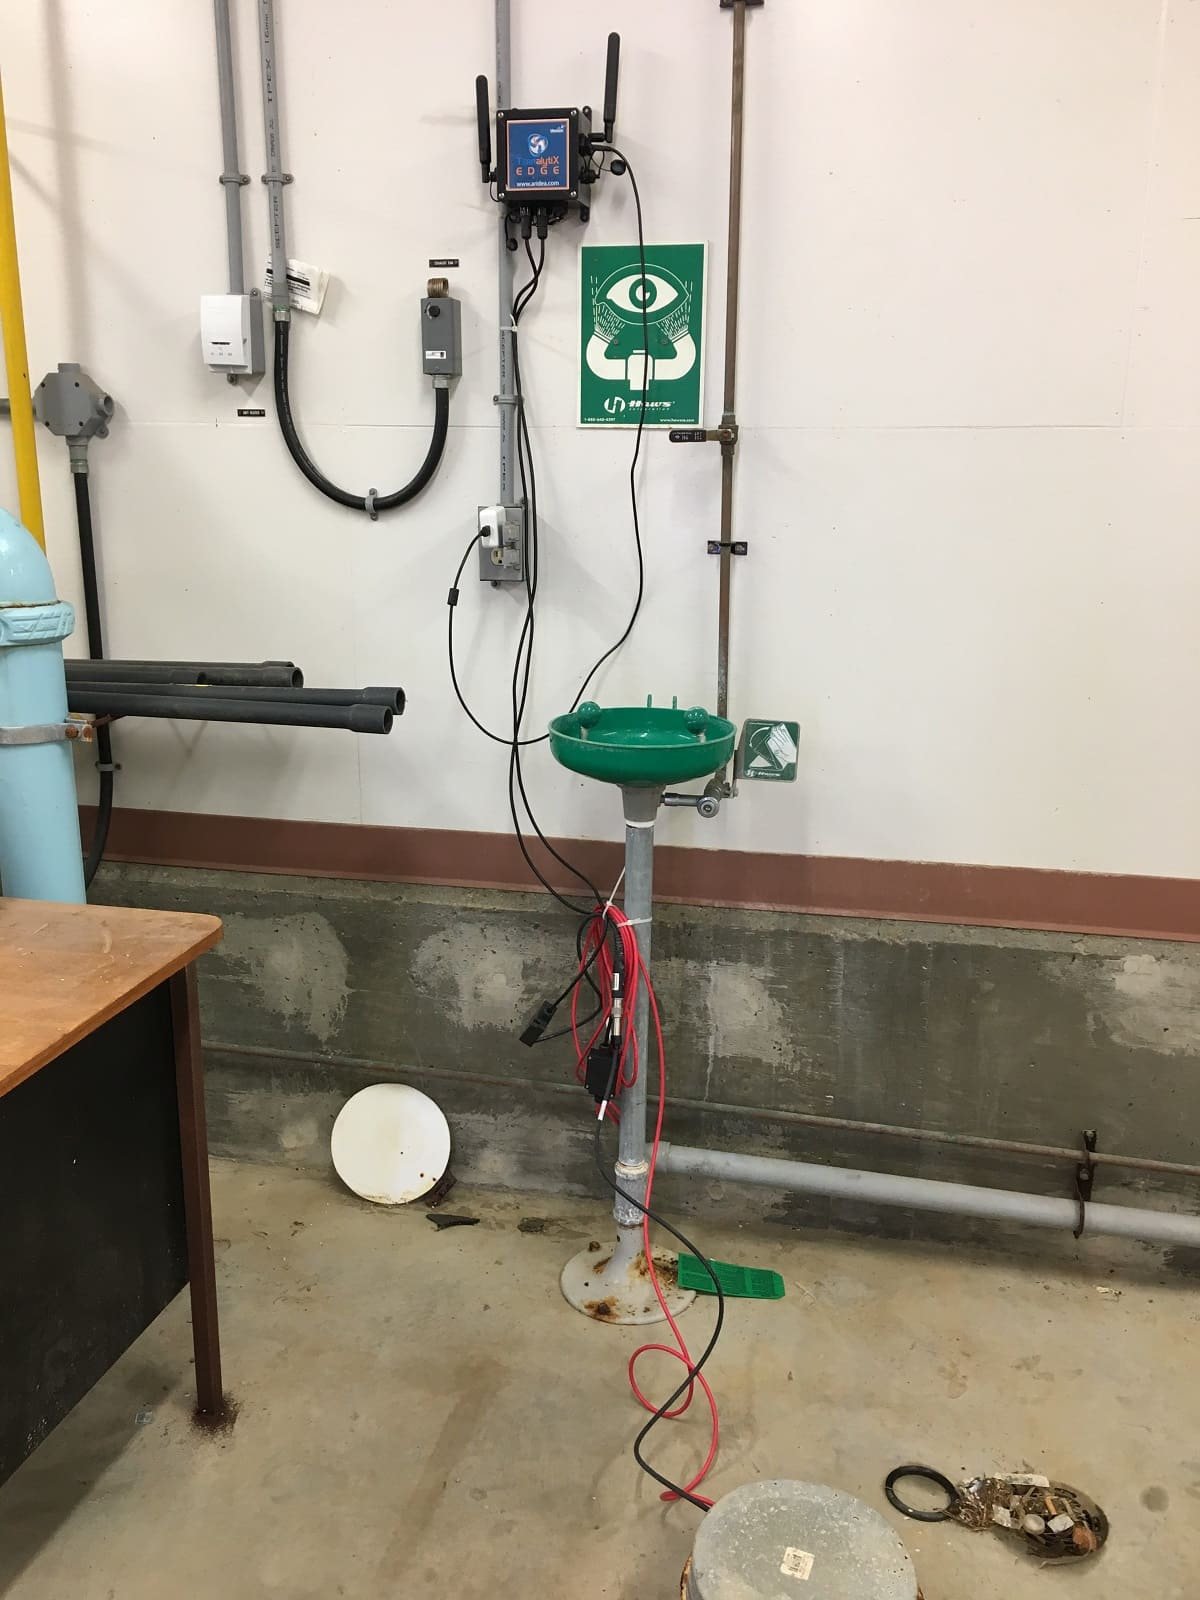 Aridea uses Libelium's P&S! Smart Water Xtreme for this project